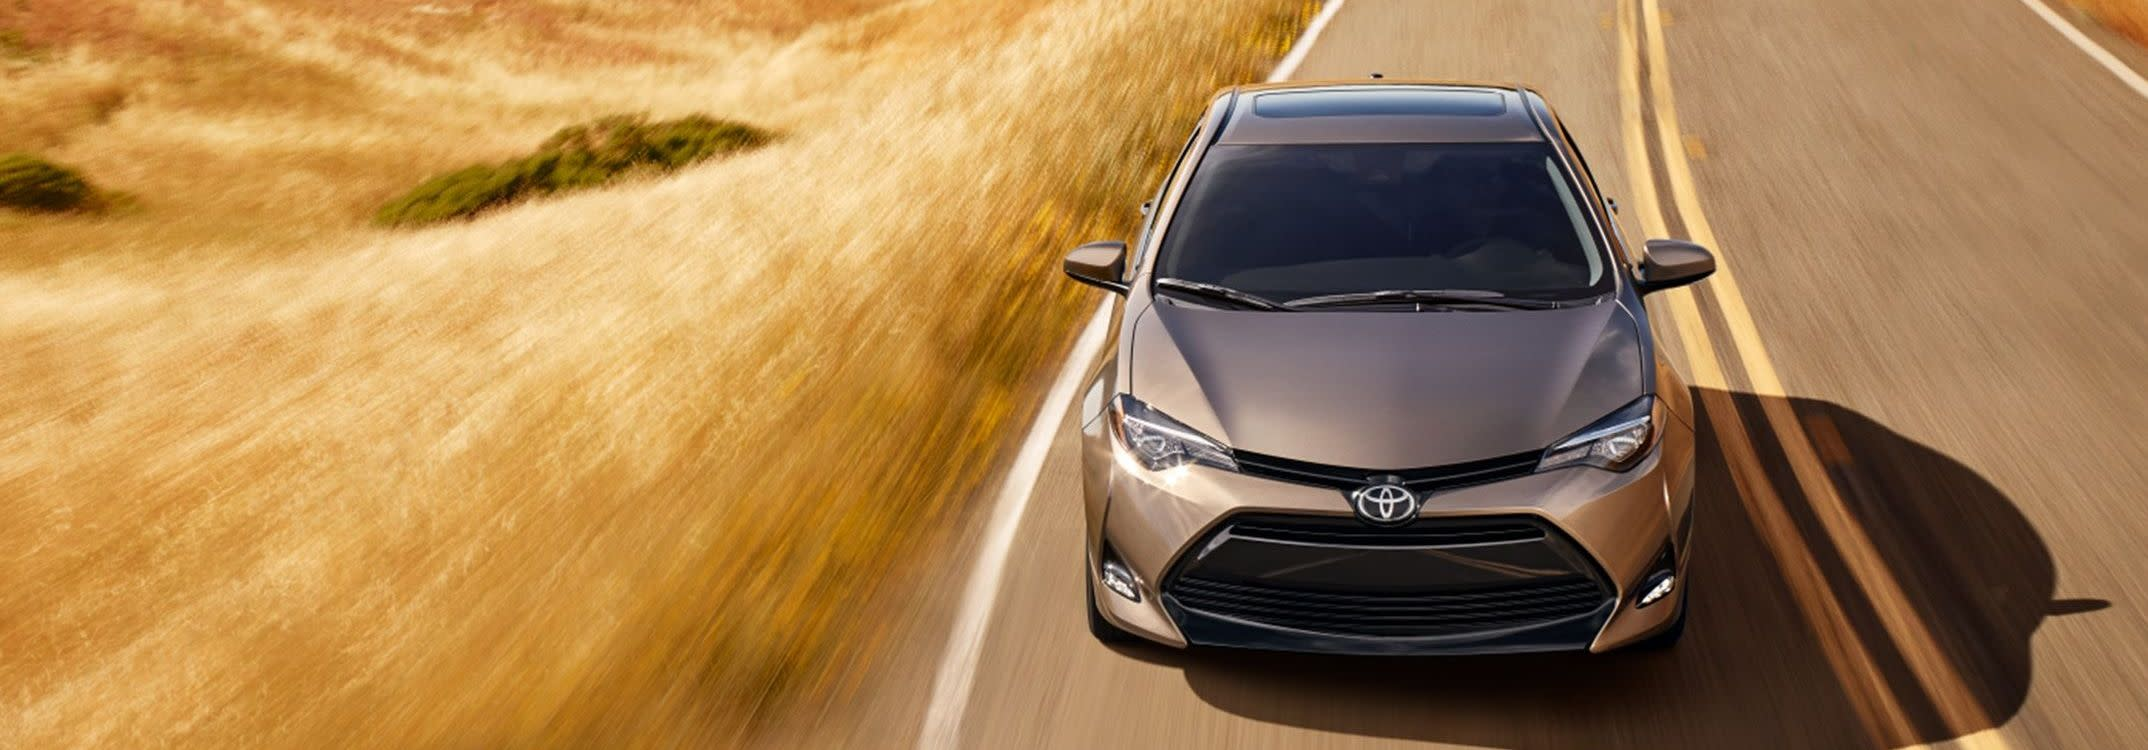 Toyota Corolla Owners Manual: Locking and unlocking the doors